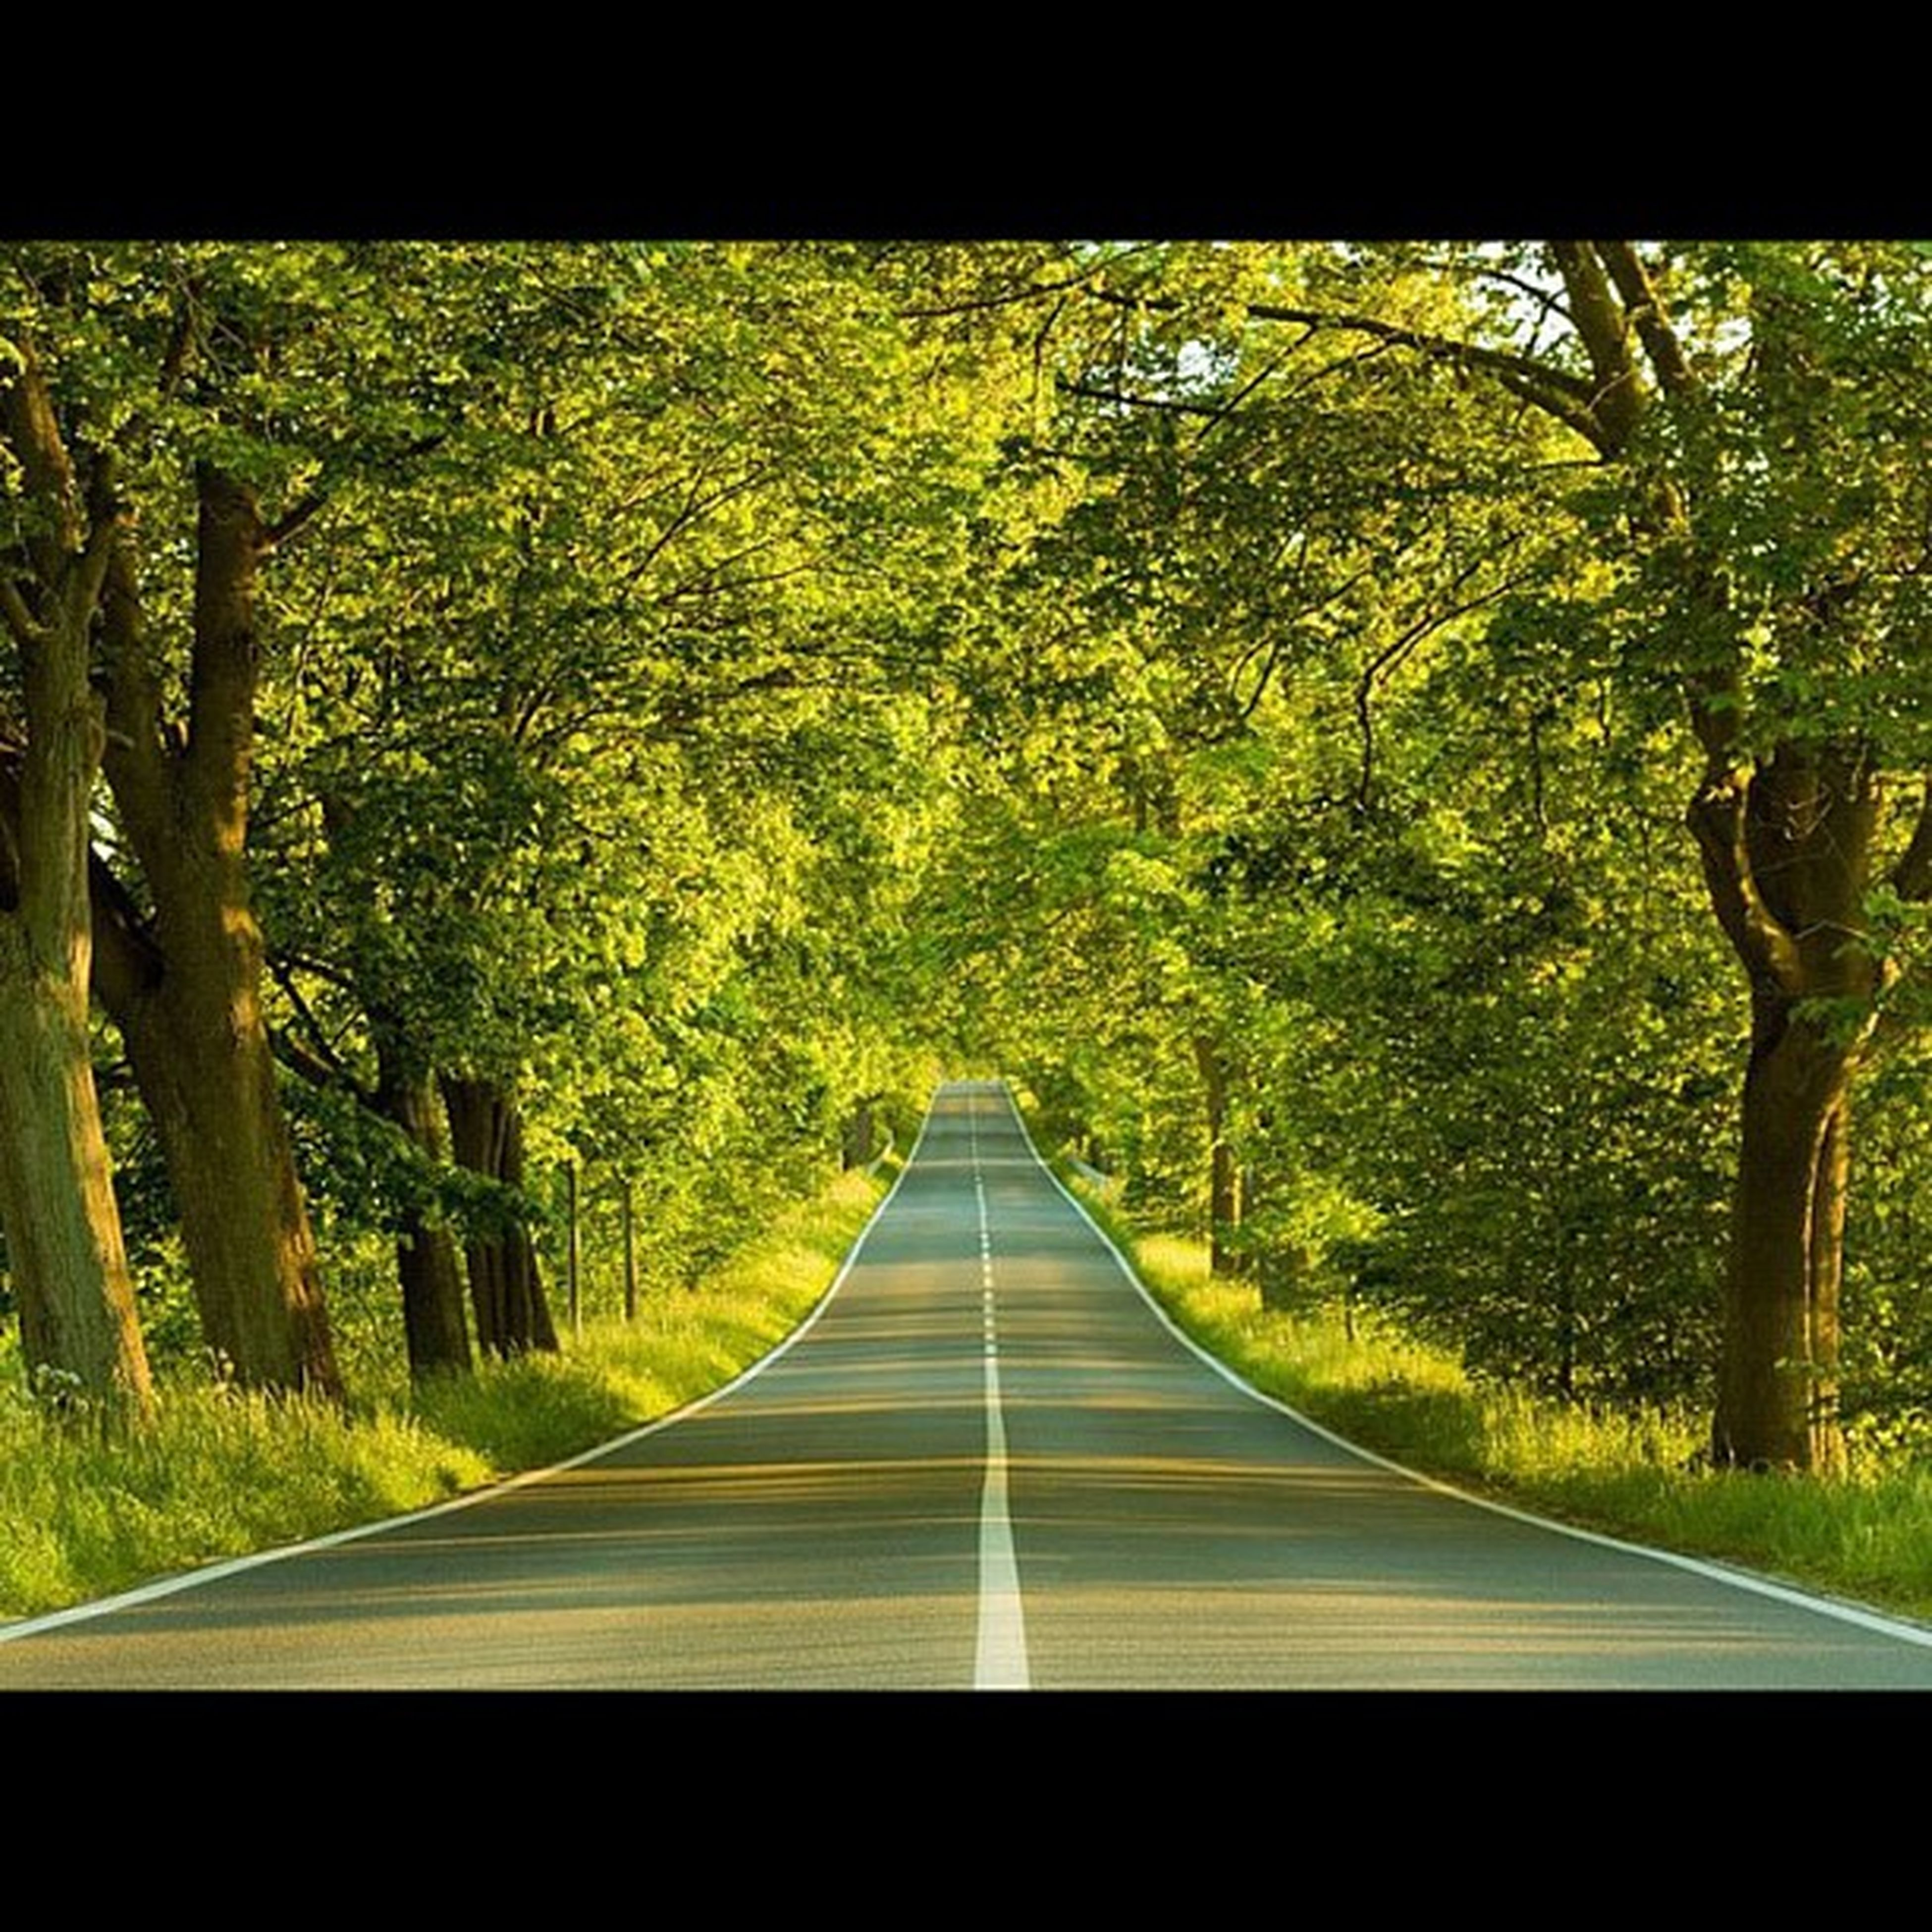 the way forward, tree, diminishing perspective, vanishing point, transfer print, transportation, growth, road, tranquility, nature, green color, tranquil scene, auto post production filter, sunlight, beauty in nature, empty, no people, day, forest, outdoors